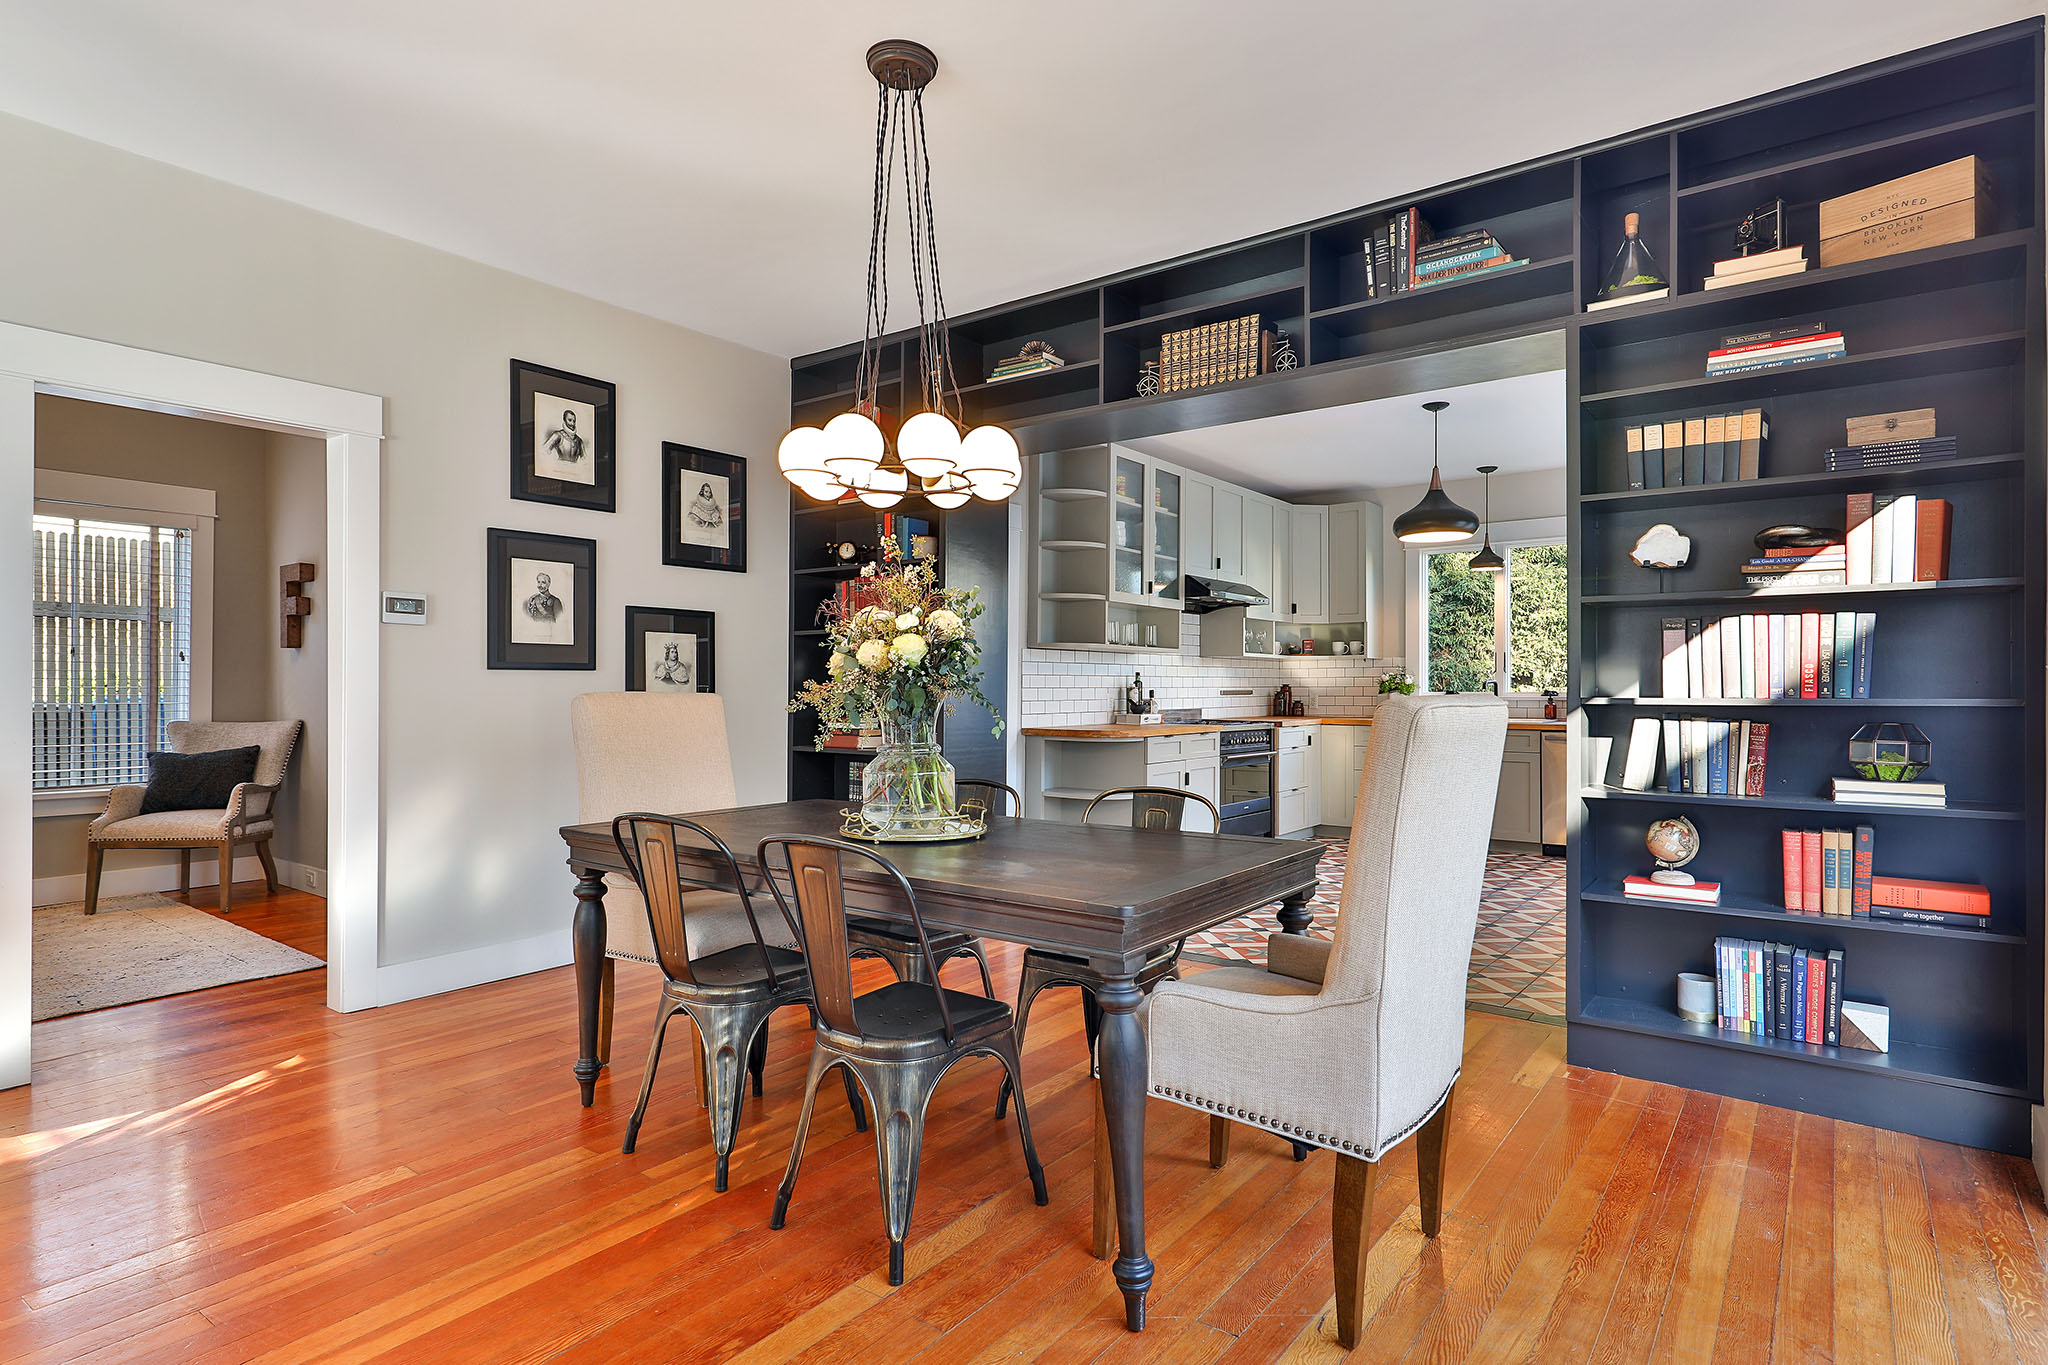 San Francisco Home - dining room with built in bookshelves